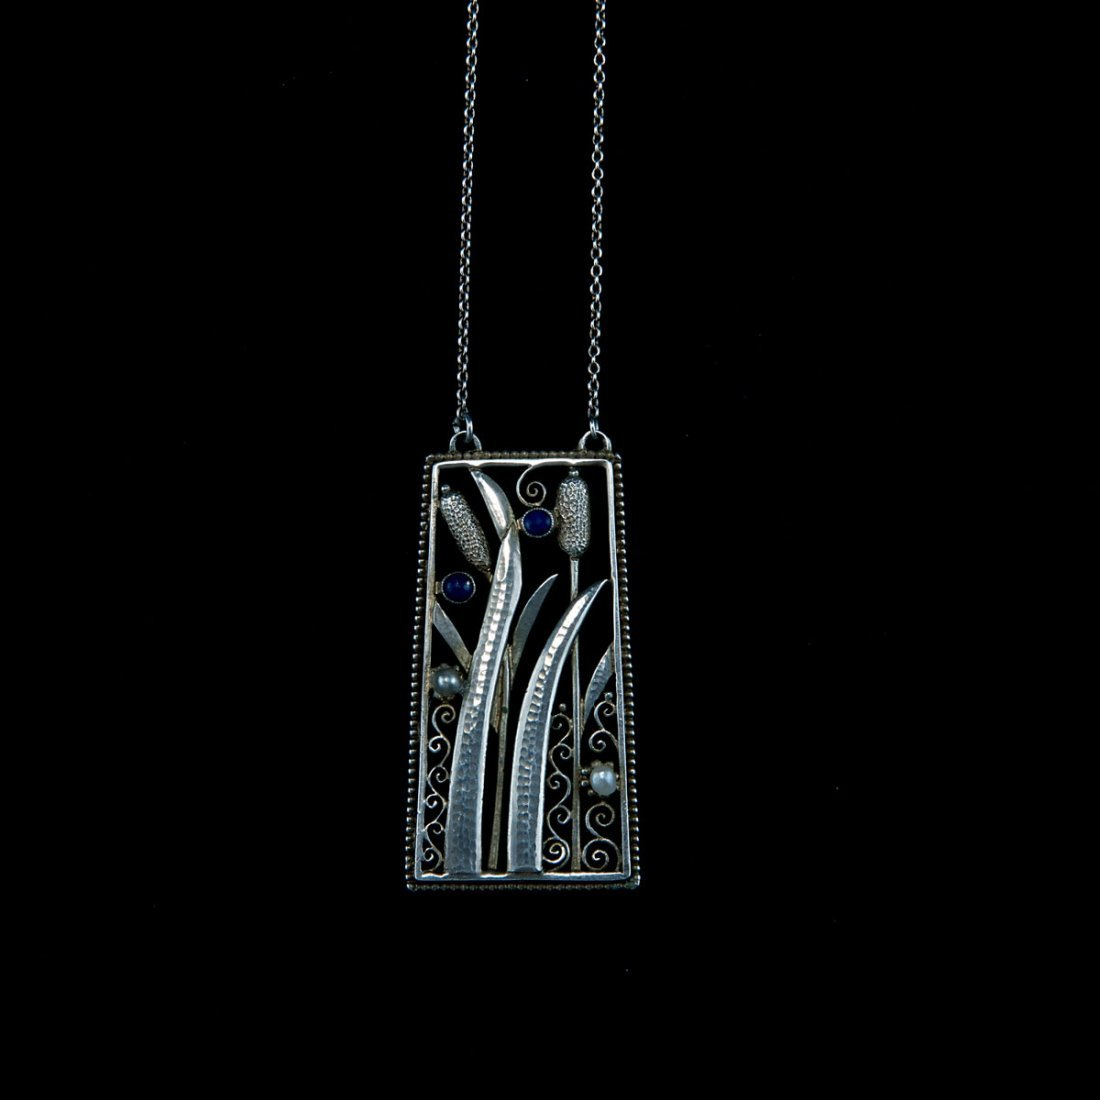 Germany. Pendant, 1920s. 5.2 x 2.6 cm. Silver, part